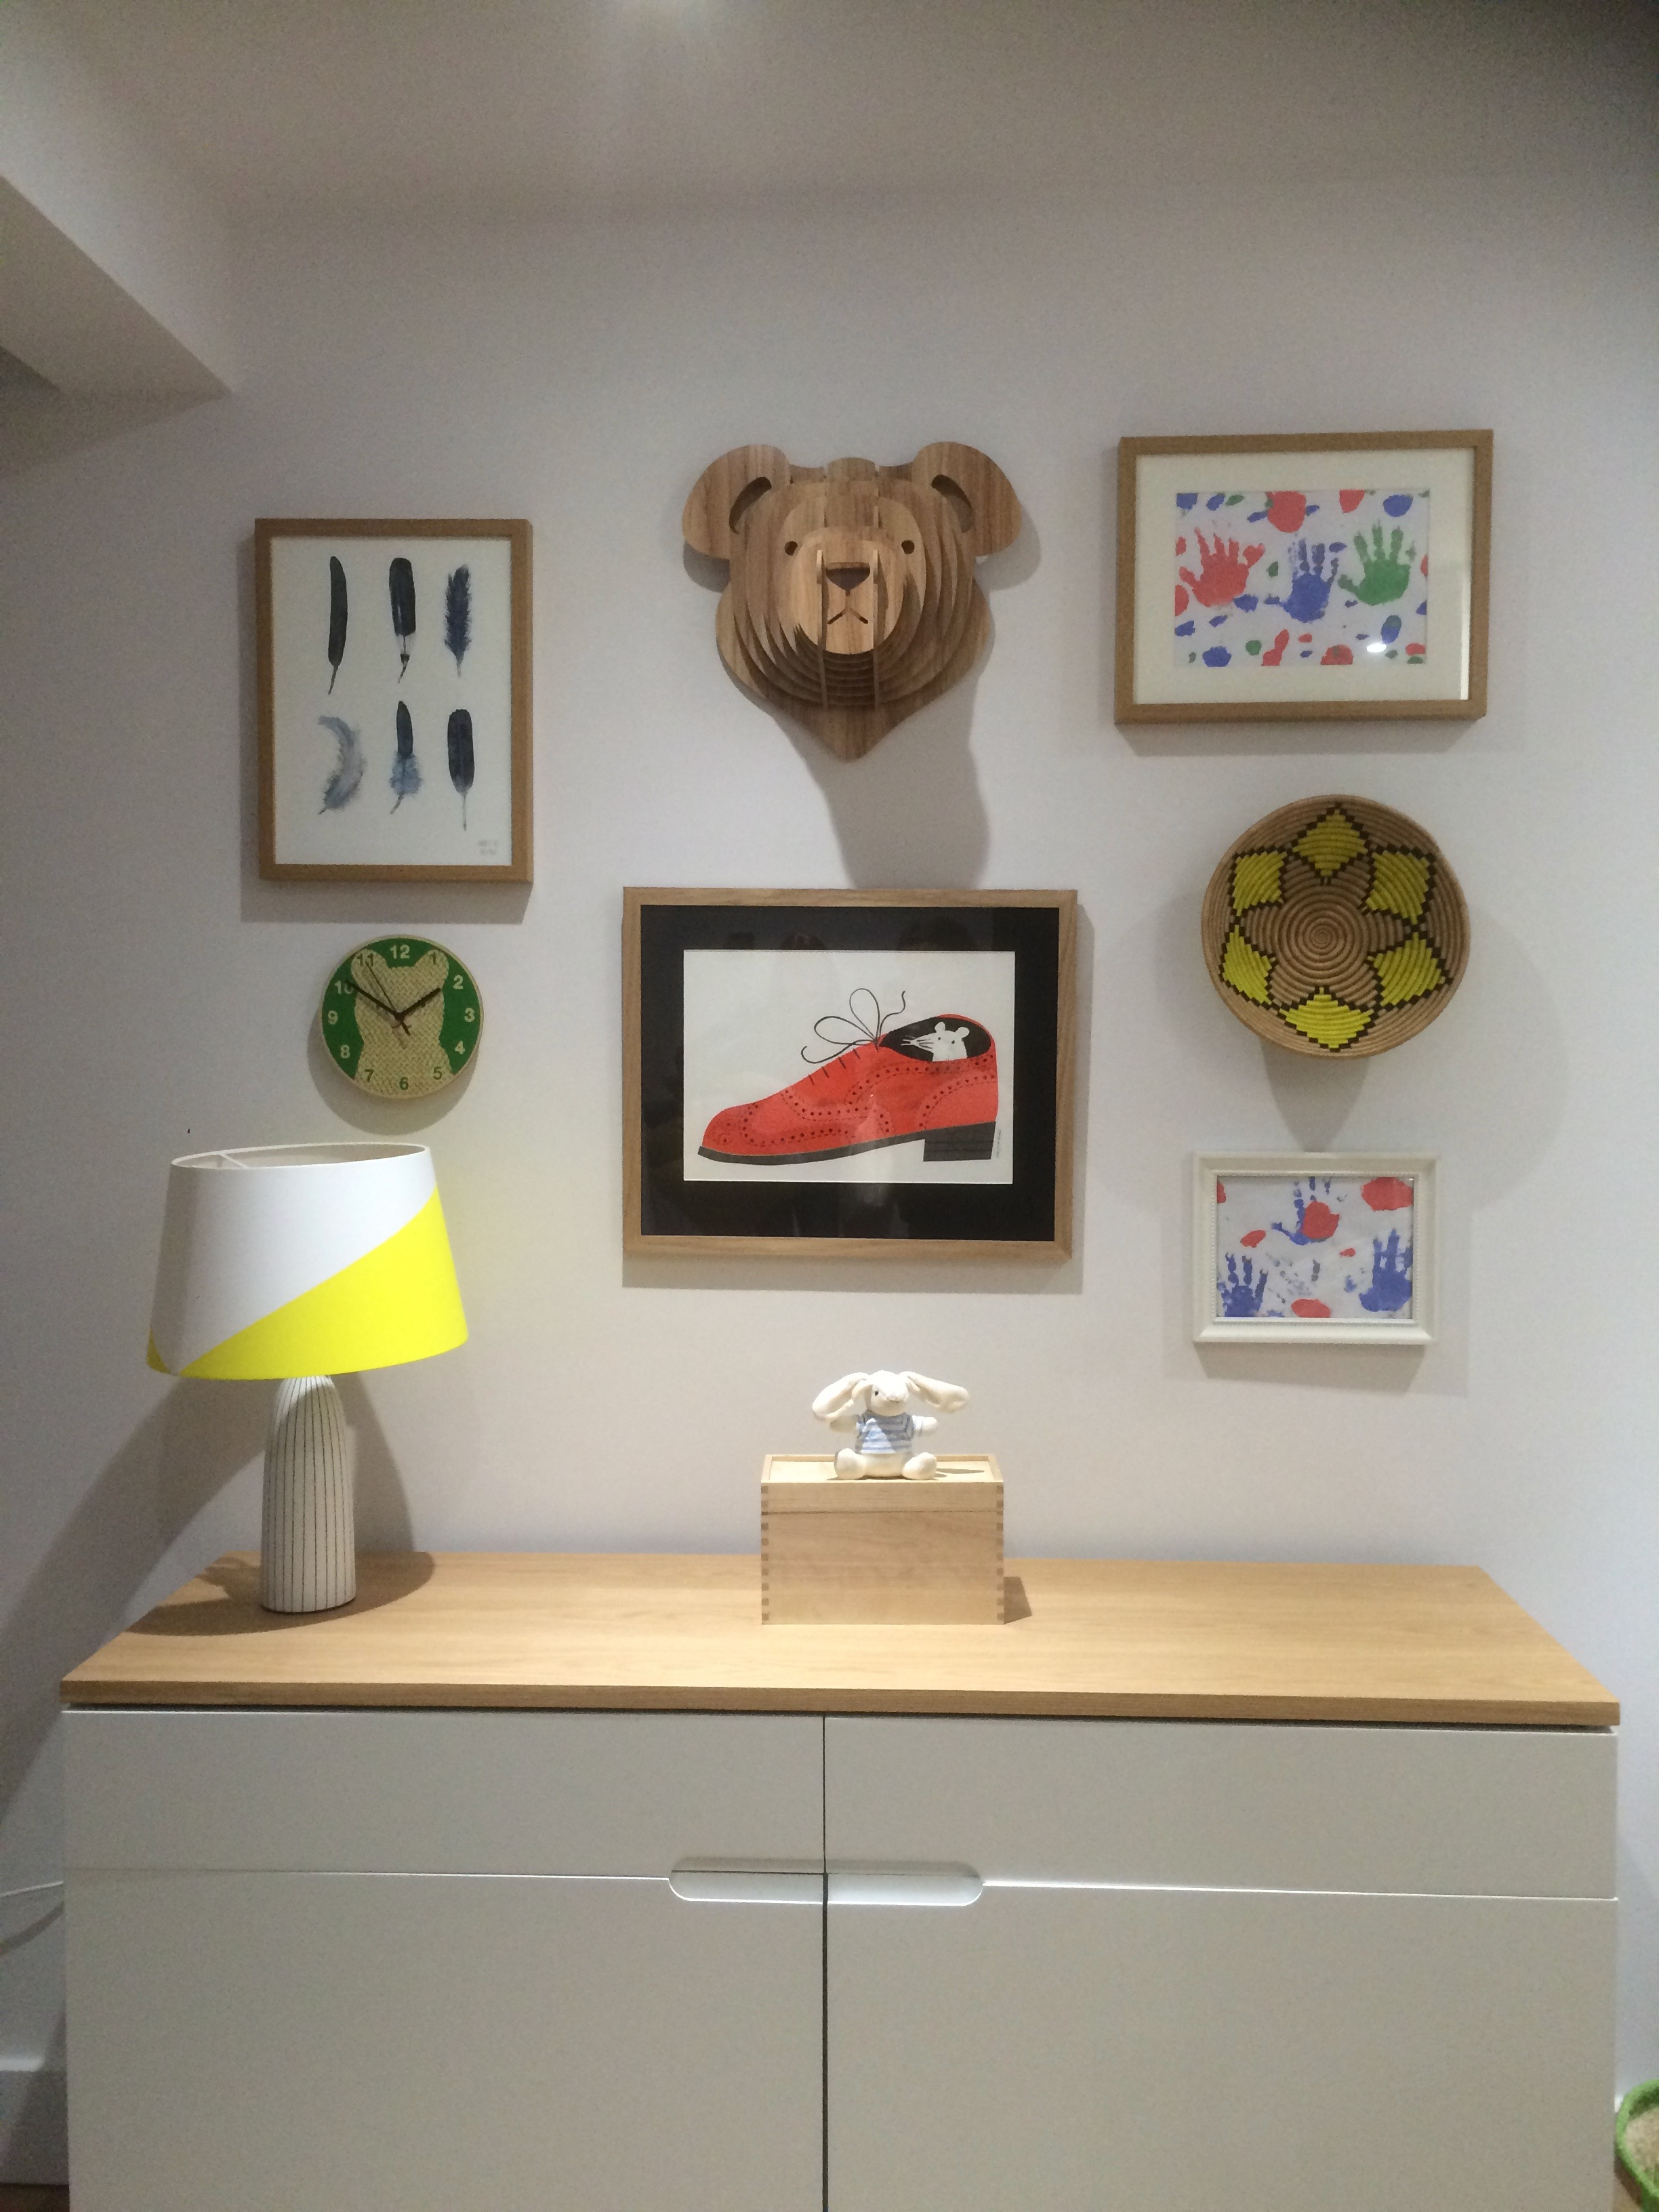 The finished playroom gallery wall